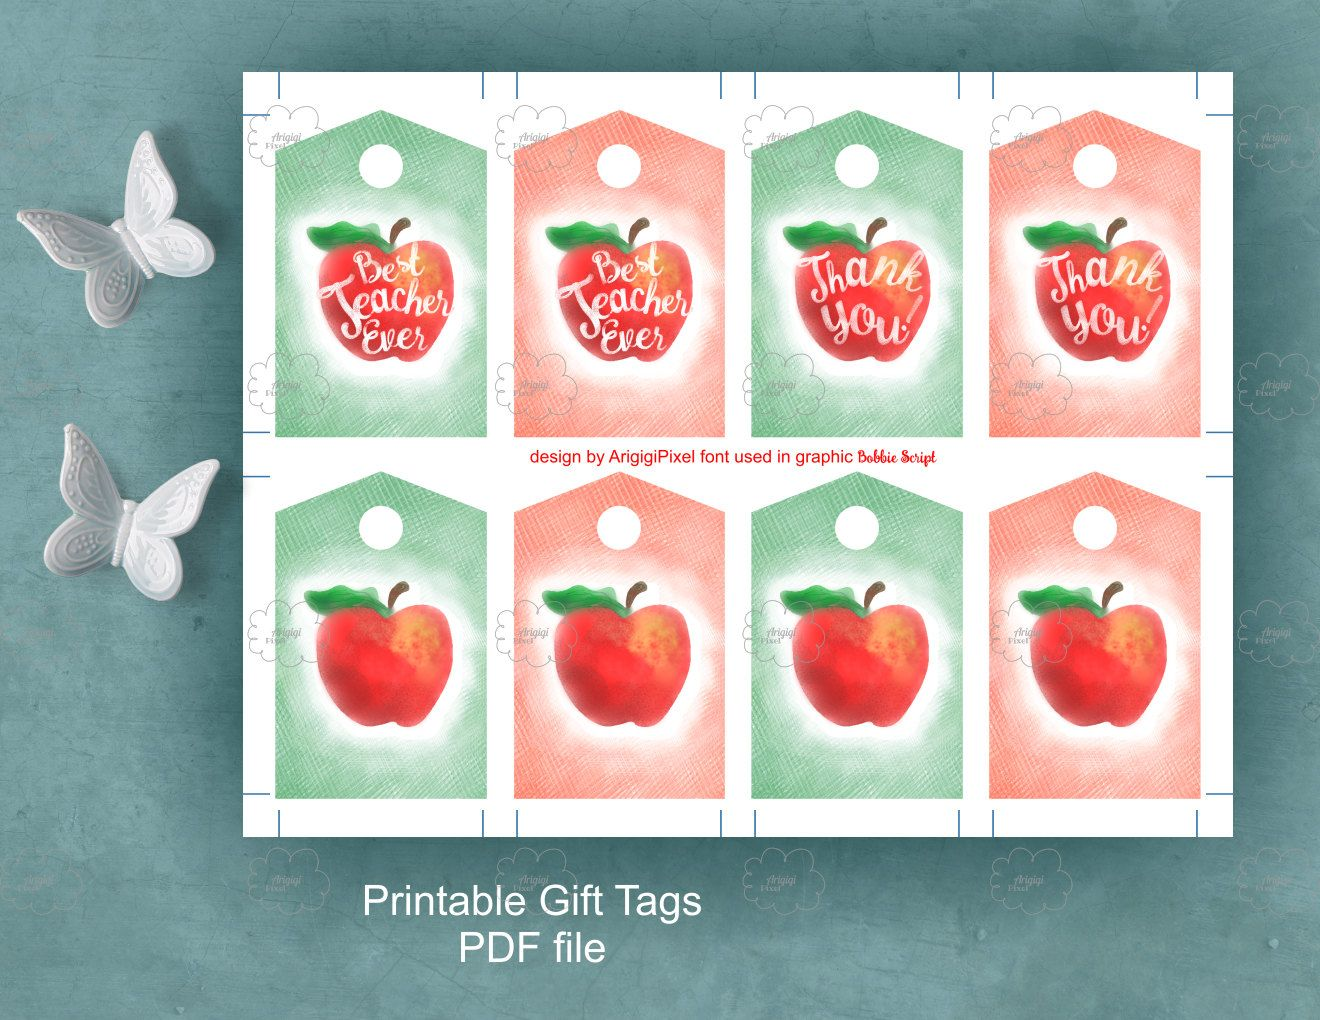 Printable Red Apple Gift Tags Come With Nice Calligraphy Text Best Teacher Ever And Thank You Be Apple Gifts Gift Tags Free Printable Gift Tags